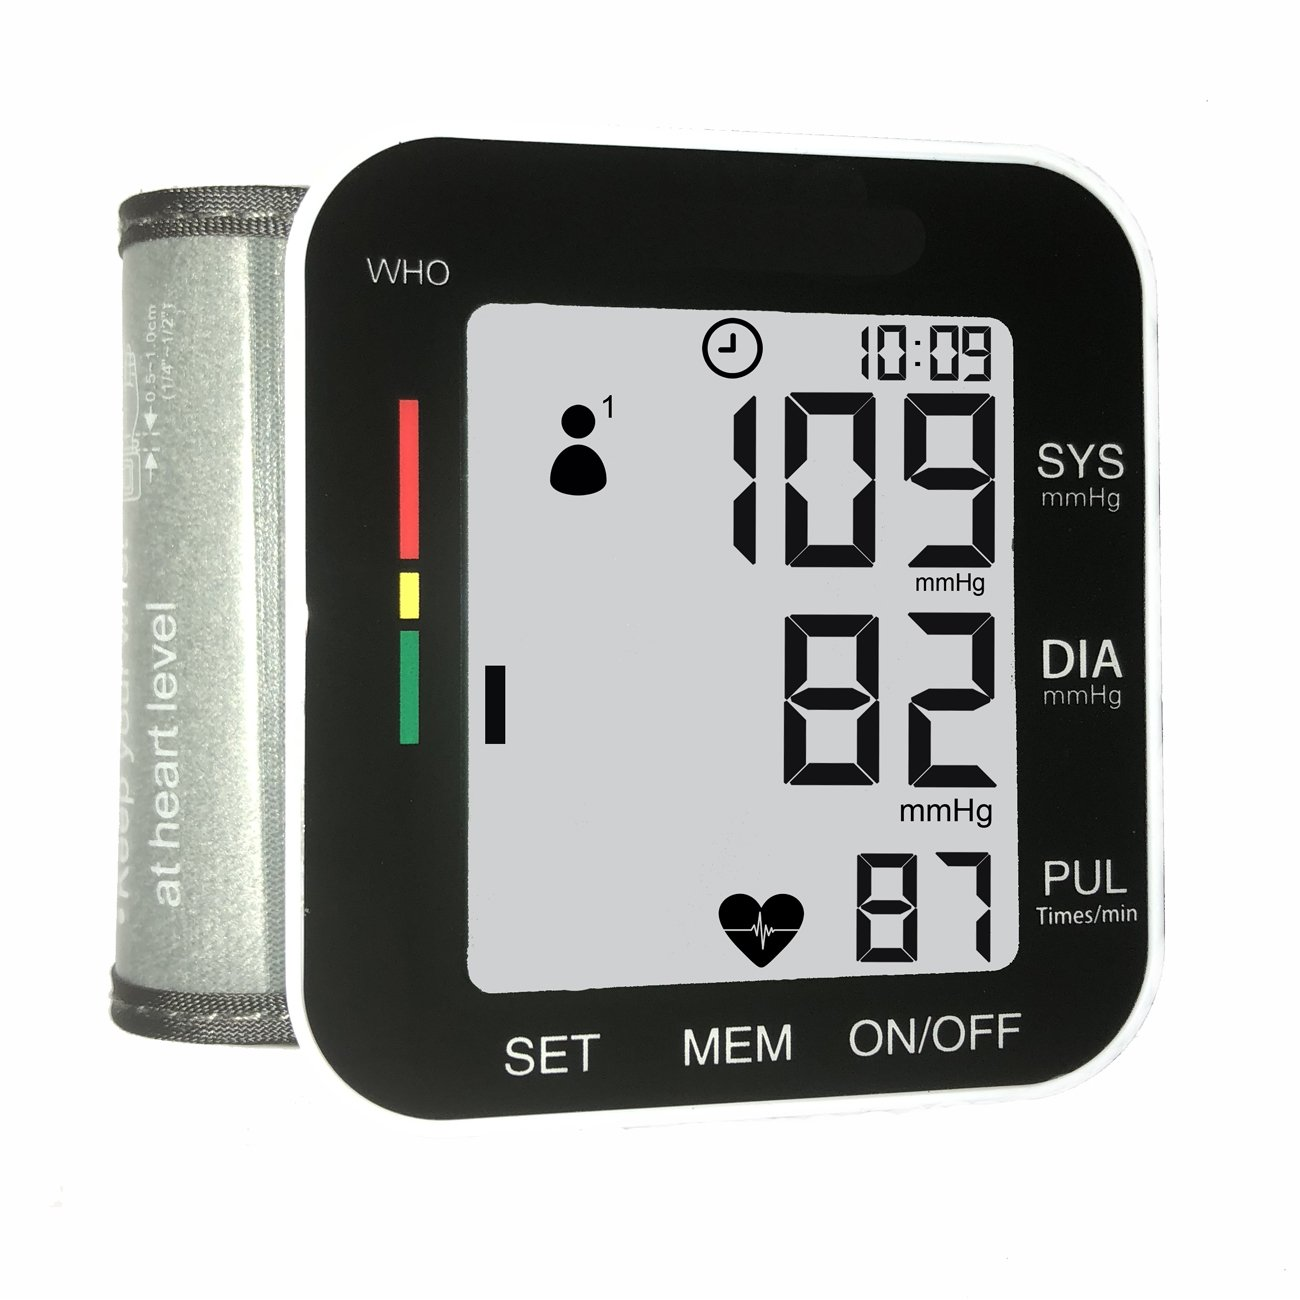 Blood Pressure Monitor Wrist Type Cuff Portable Digital Medical BP Machine Meter Automatic Heartbeat Detection,Pulse and Heart Rate Monitoring with LCD Display,FDA Approved for Home Use